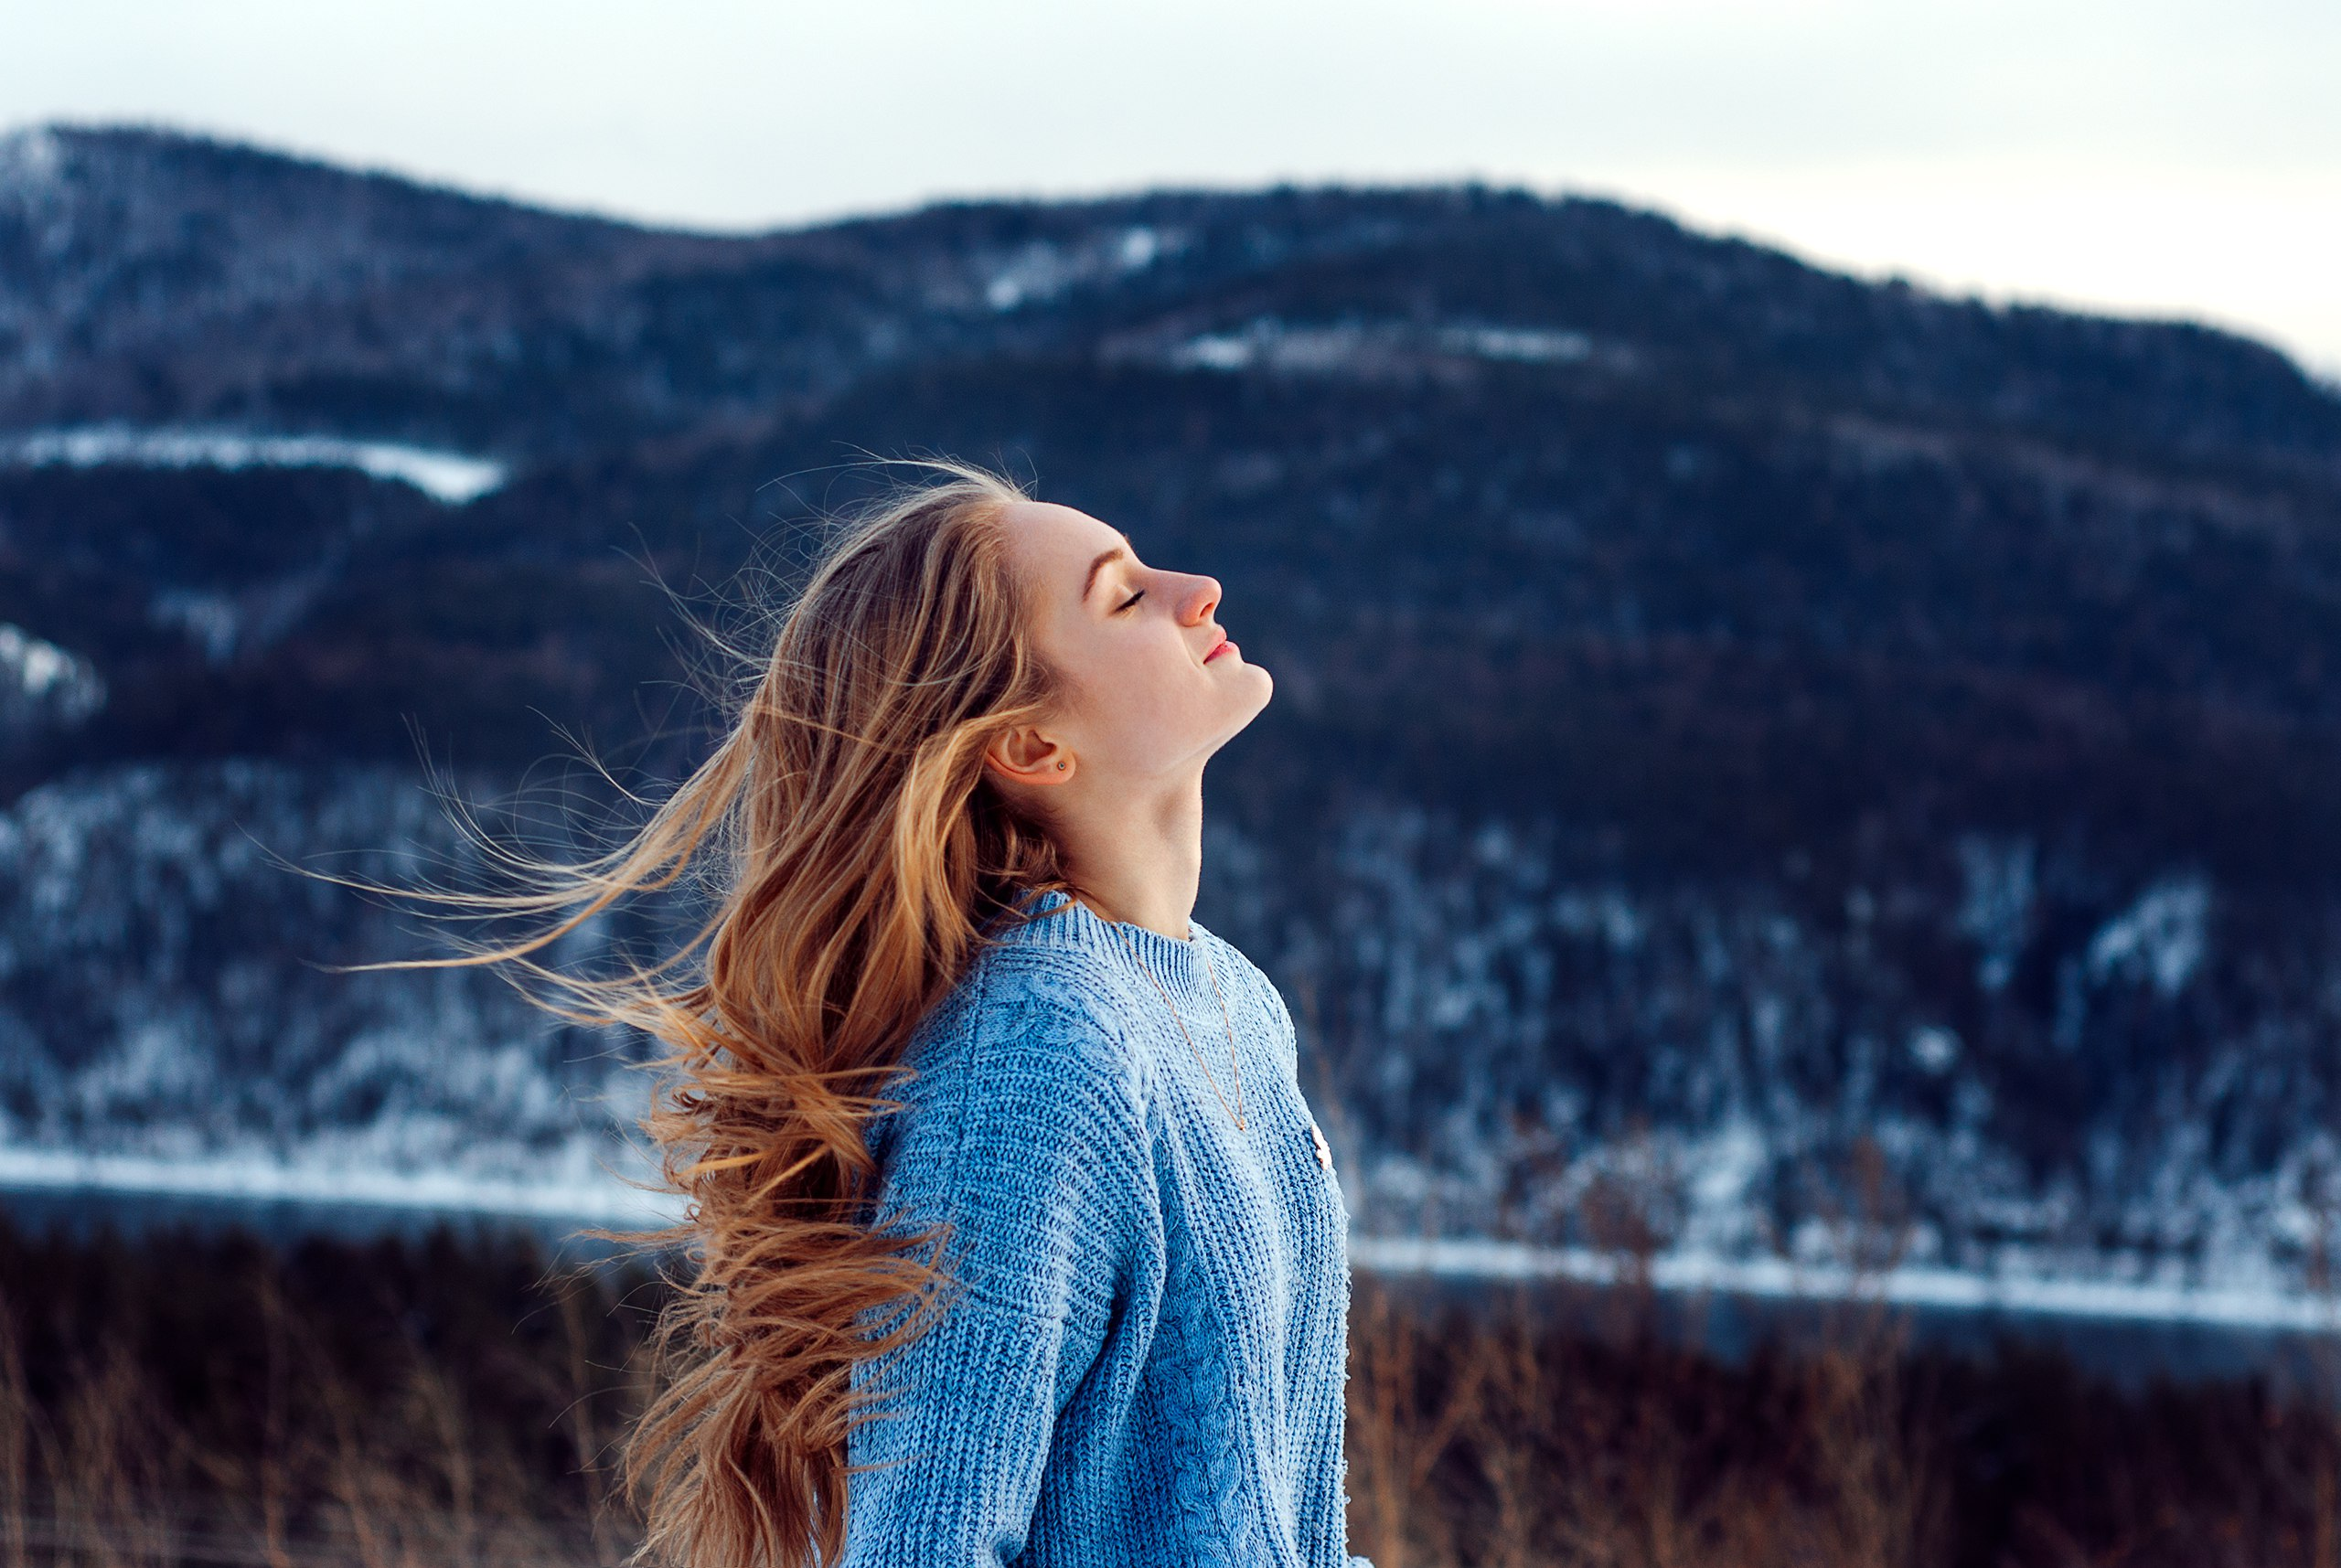 windy weather snow closed eyes girl 1574939448 - Windy Weather Snow Closed Eyes Girl -